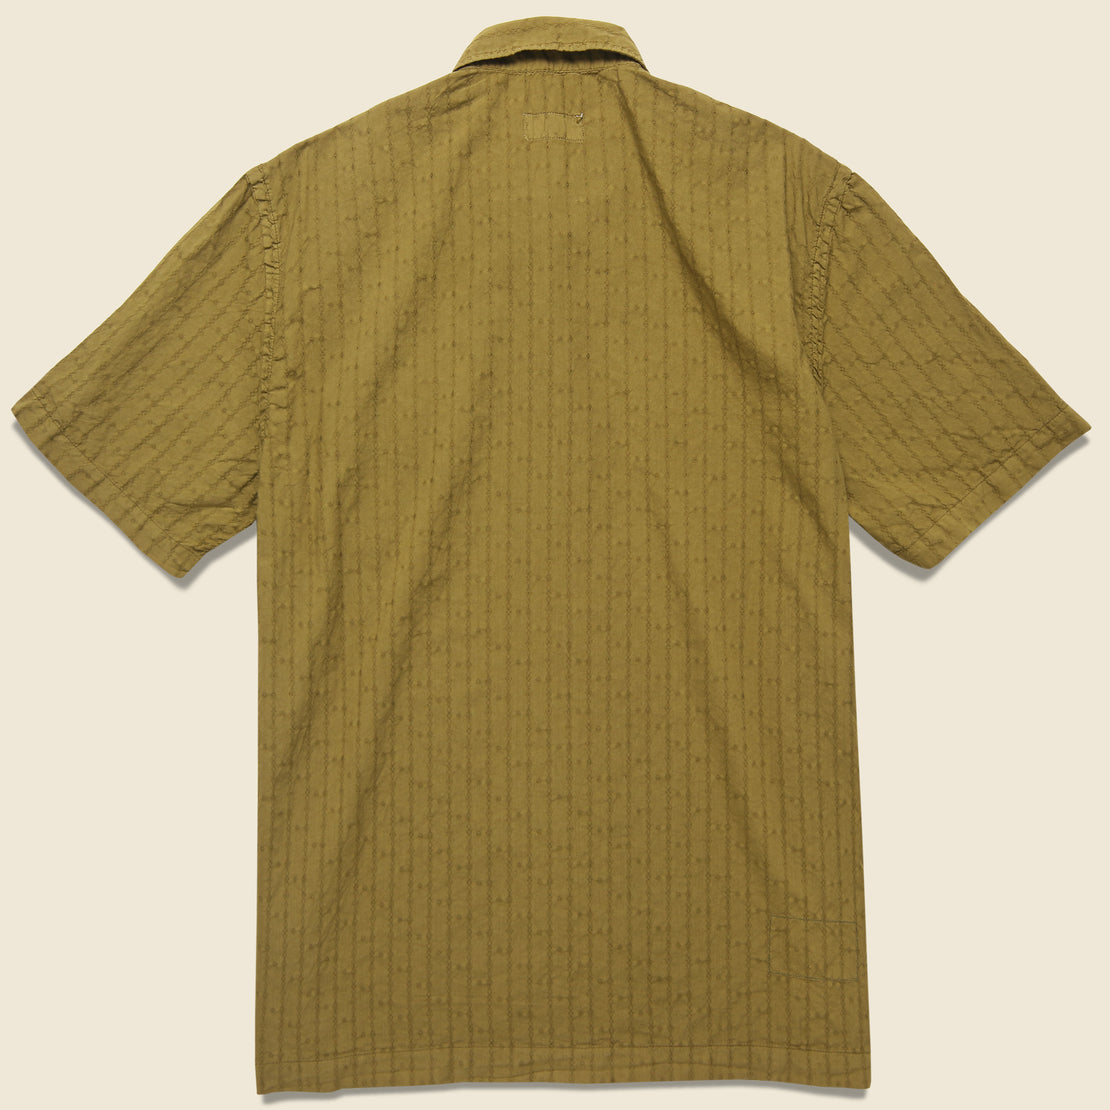 Road Shirt - Khaki Jacquard